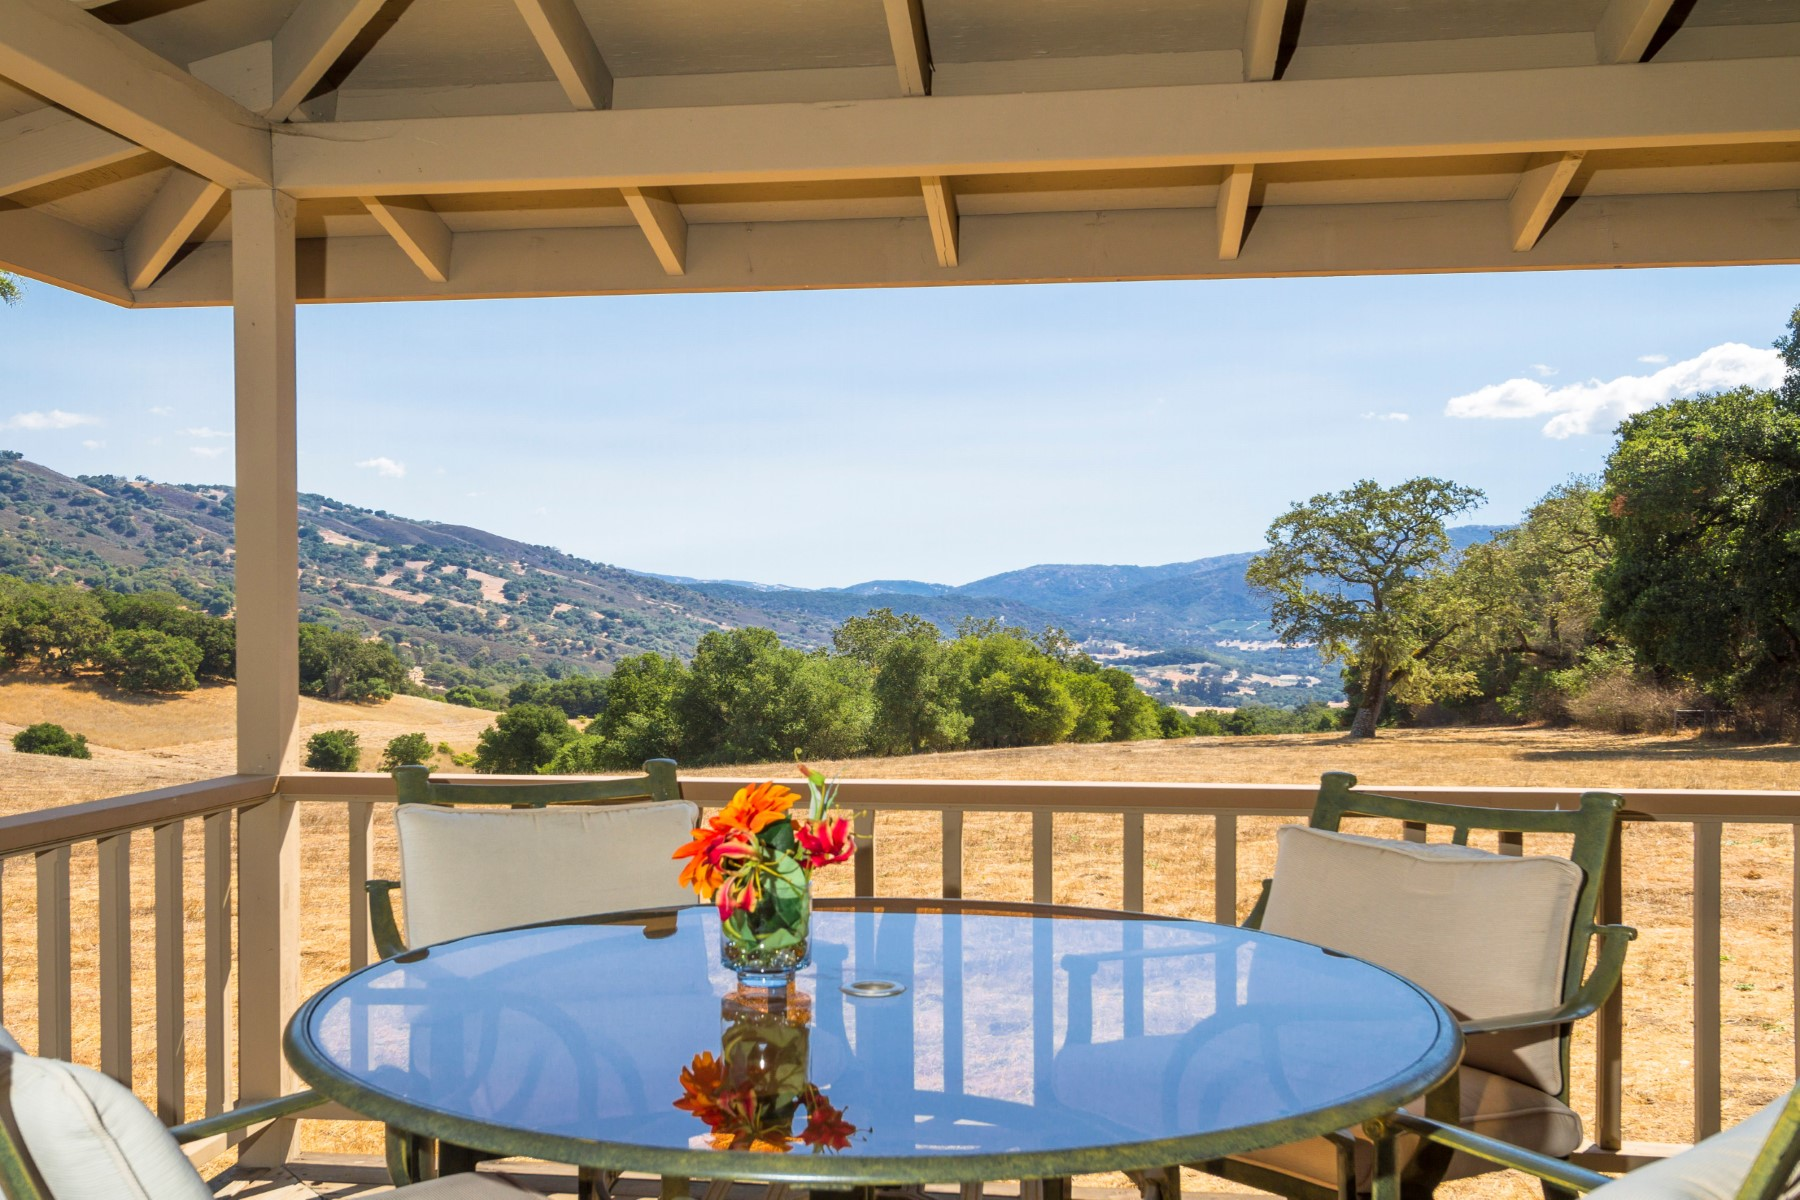 Terreno por un Venta en Chappell Ranch - A Ranch For All Seasons Carmel Valley, California 93924 Estados Unidos